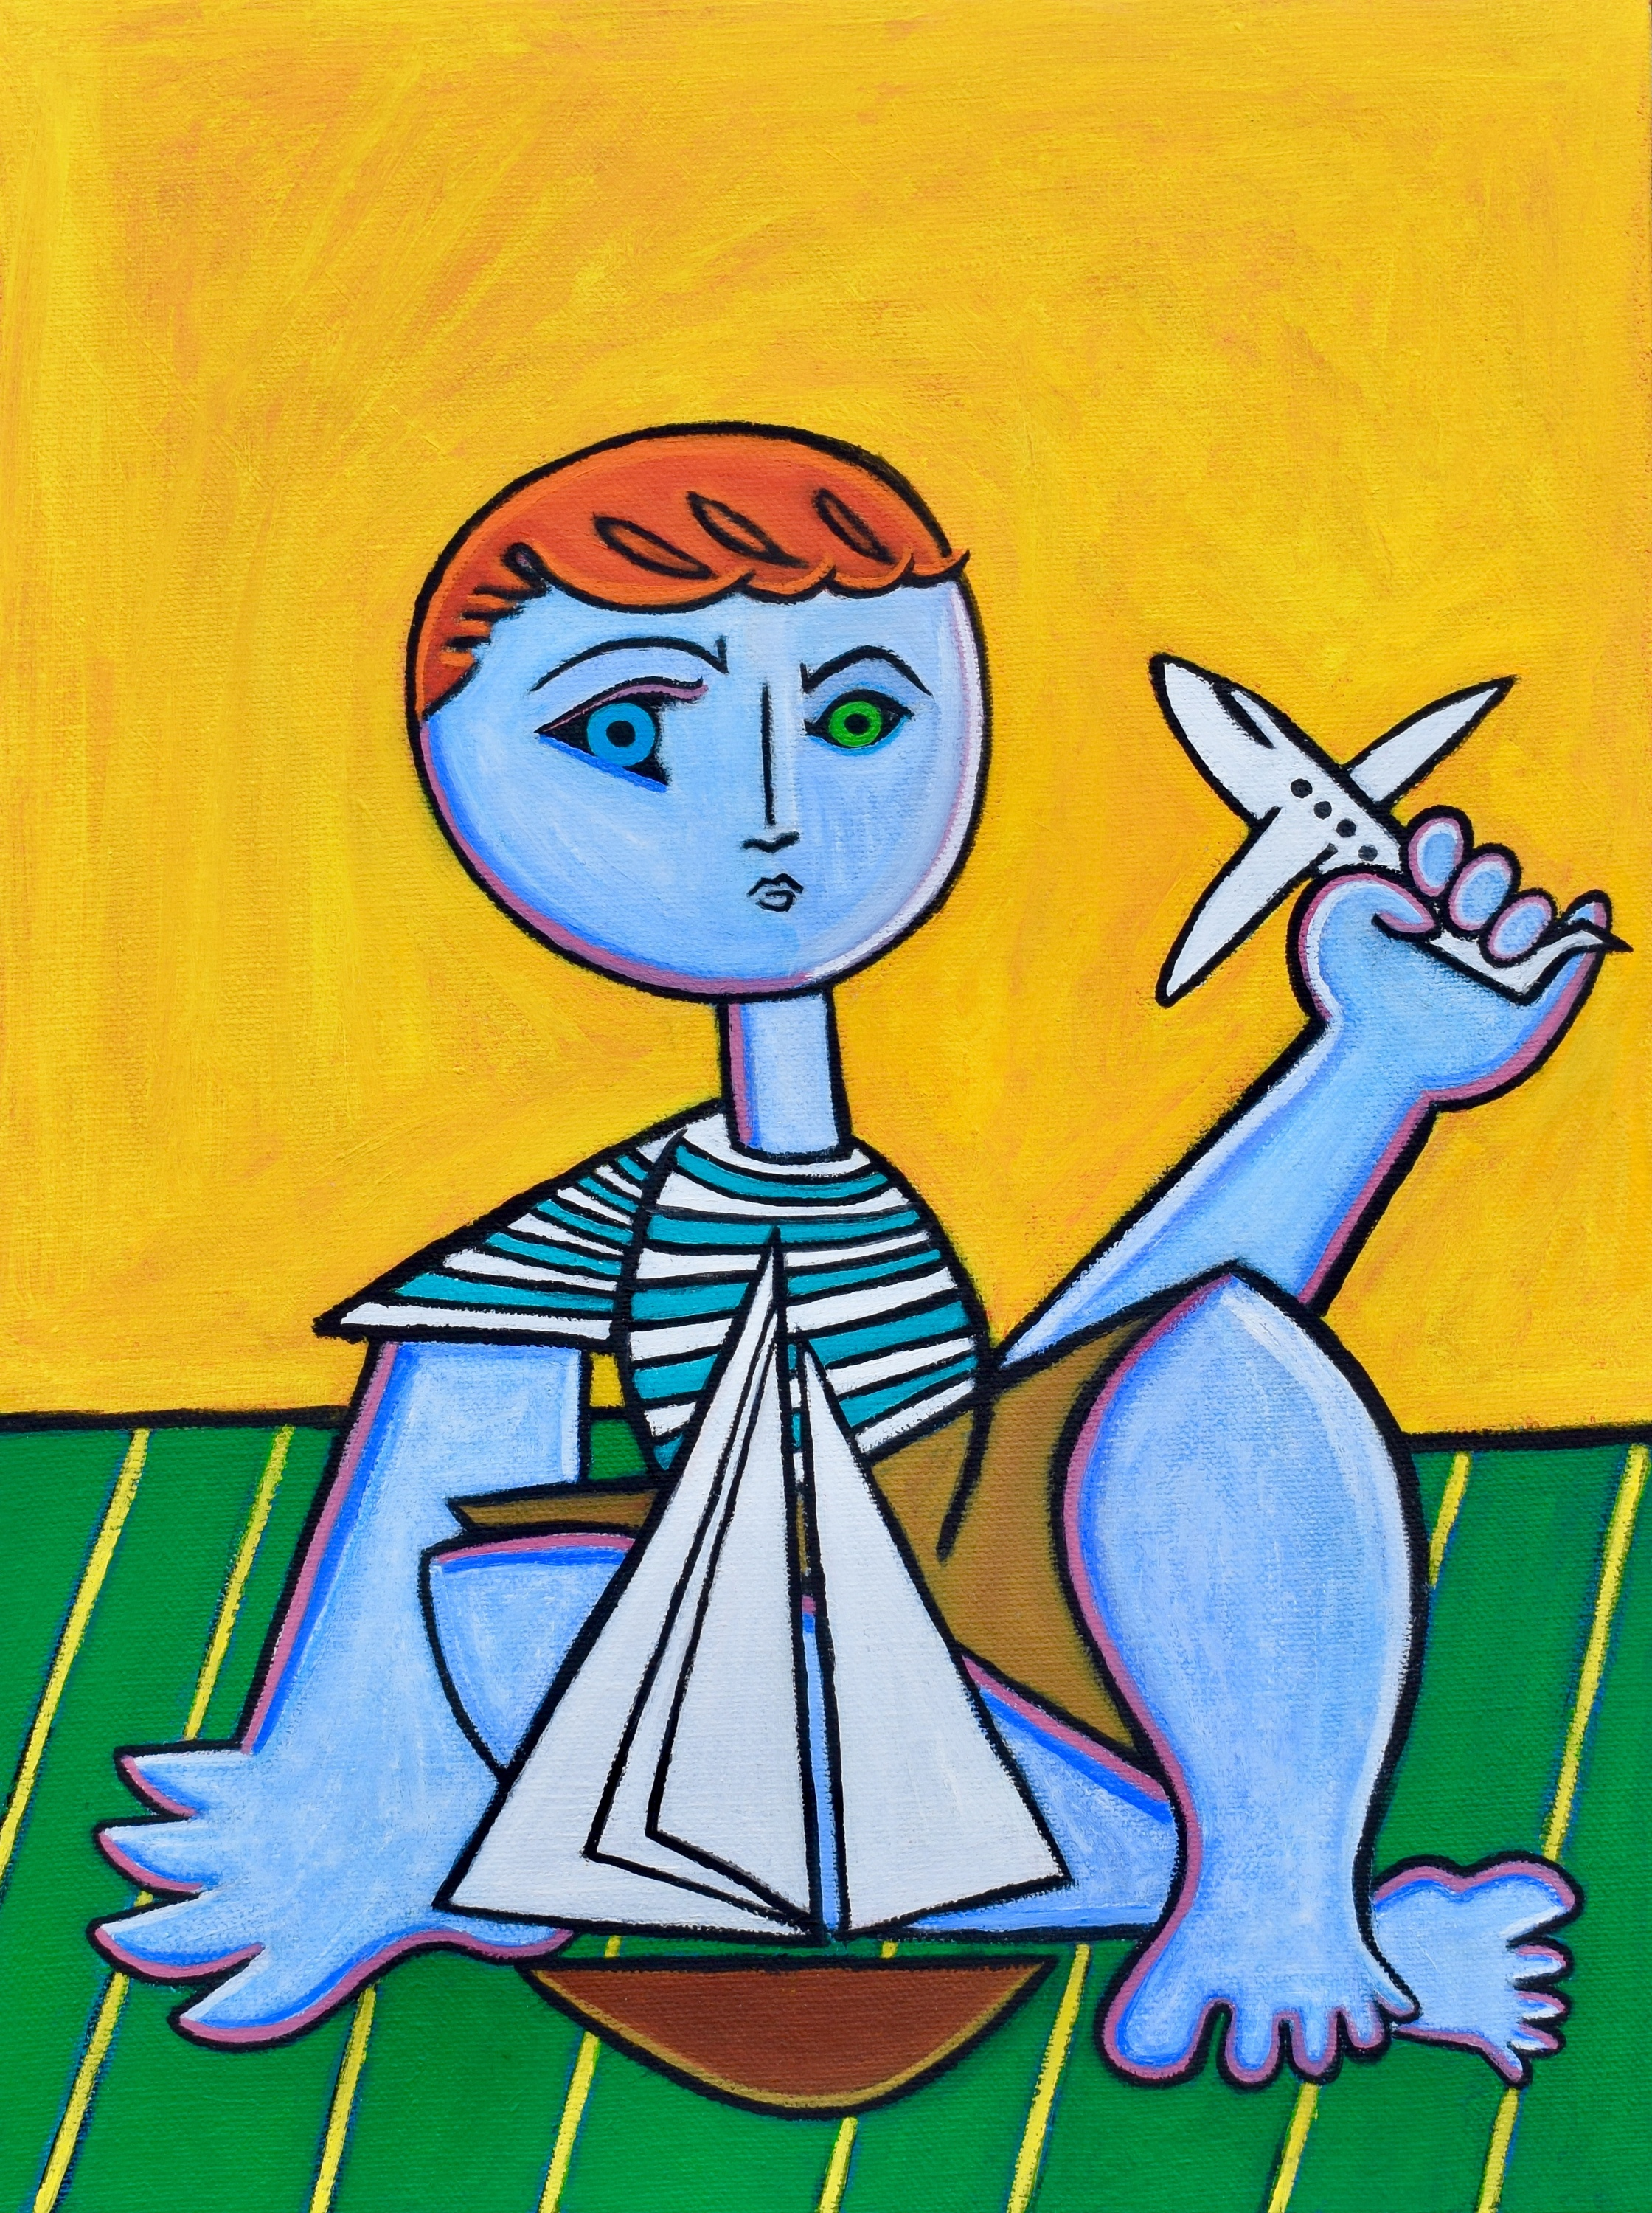 Boy with boat and plane painting paul zepeda wetpaintnyc trbhu5